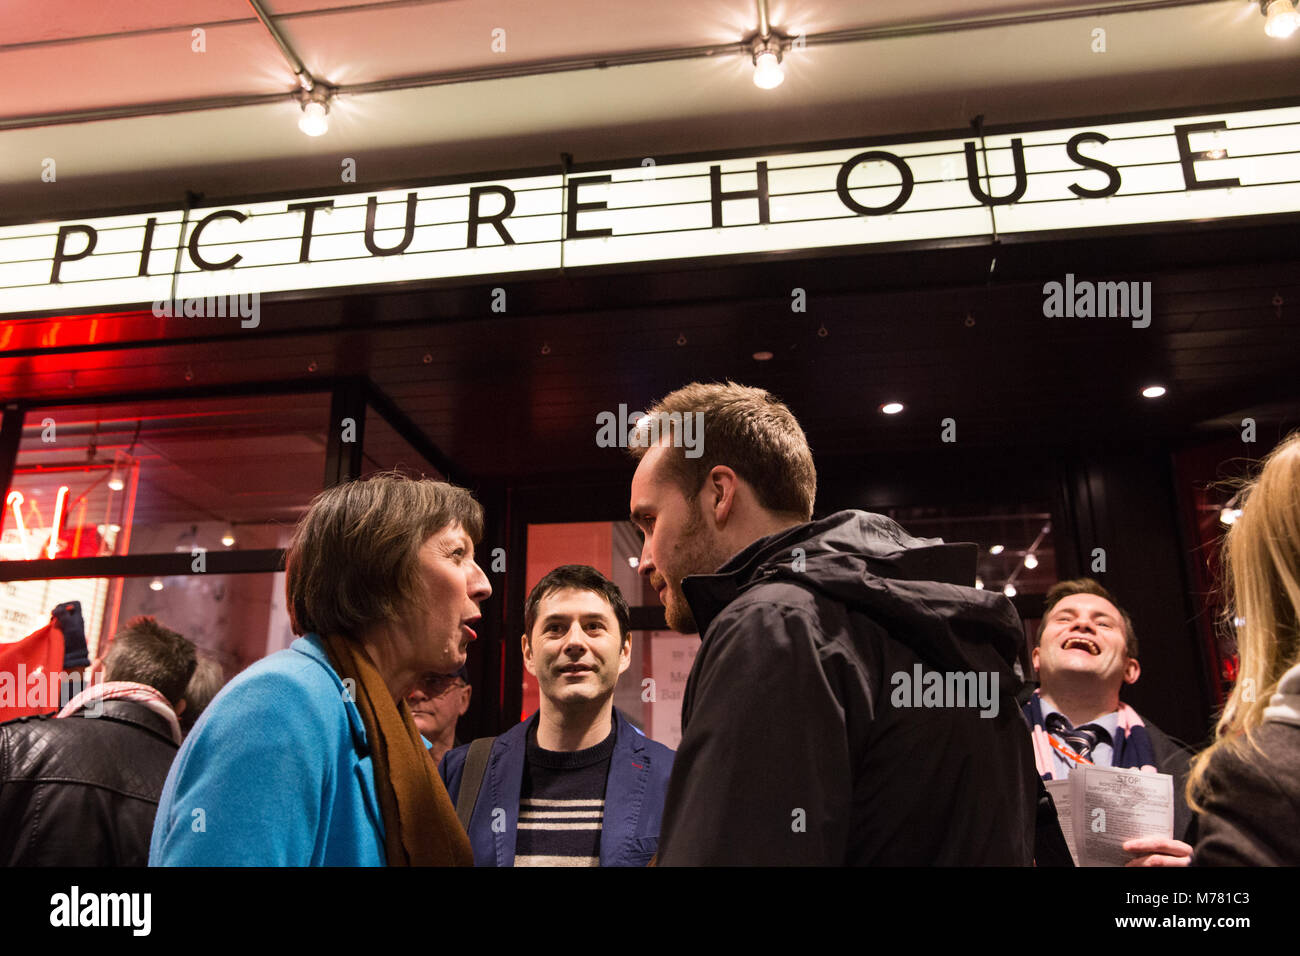 London, UK. 8th March, 2018. Frances O'Grady, General Secretary of the TUC, joins cinema workers on their picket - Stock Image